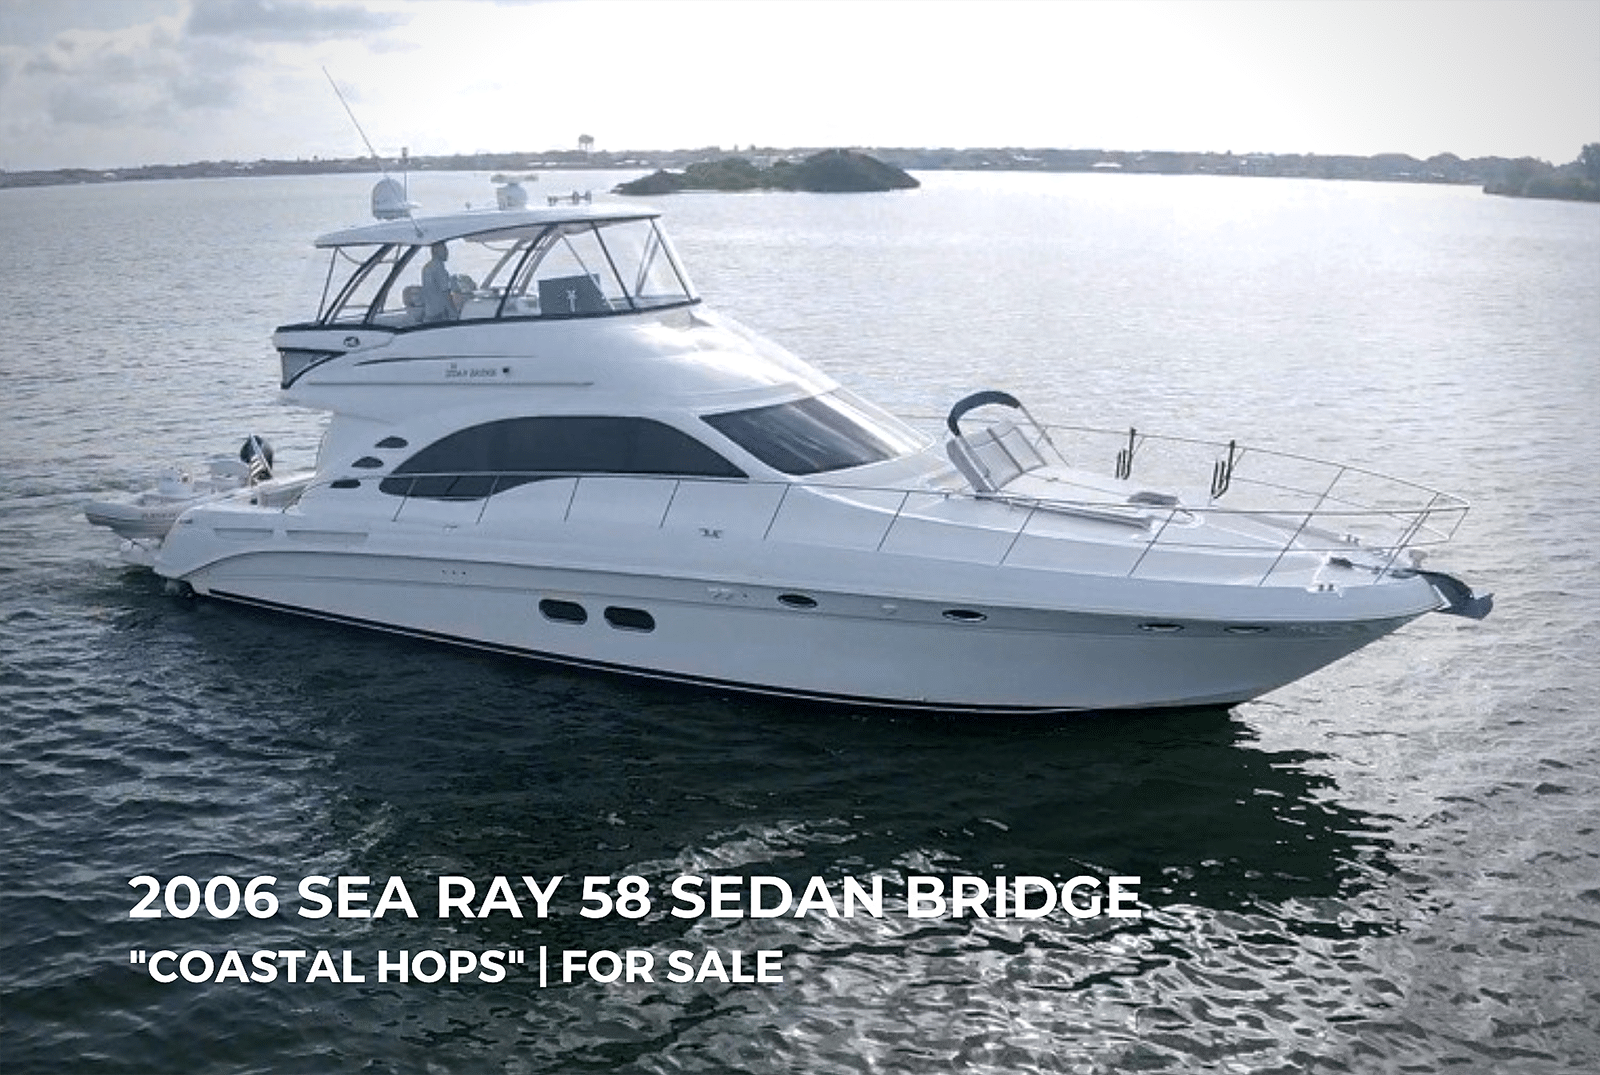 2006 Sea Ray 58 Sedan Bridge Coastal Hops